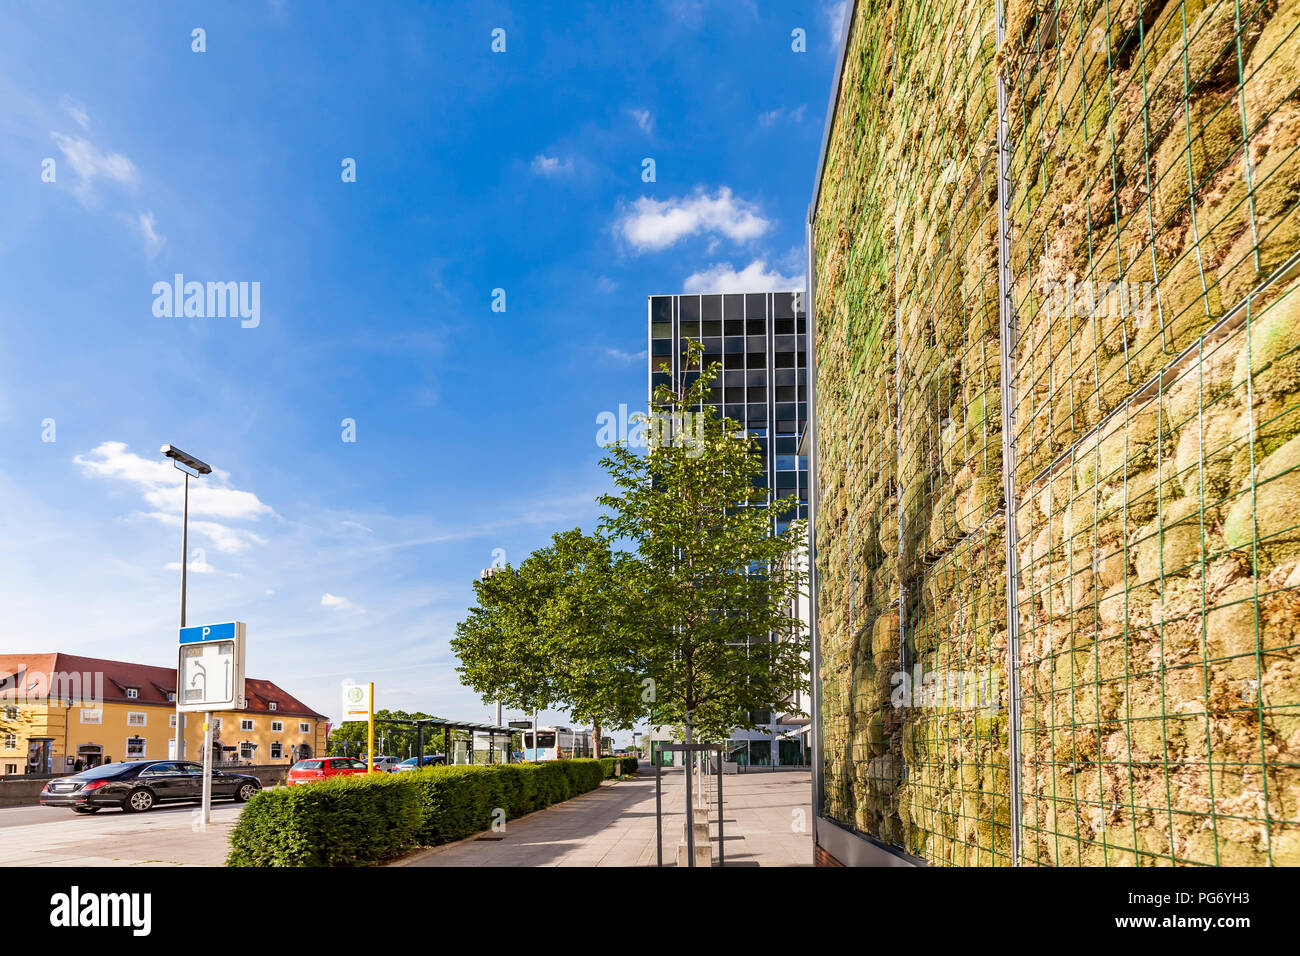 Germany, Stuttgart, wall with moss near bus station, air pollution control - Stock Image